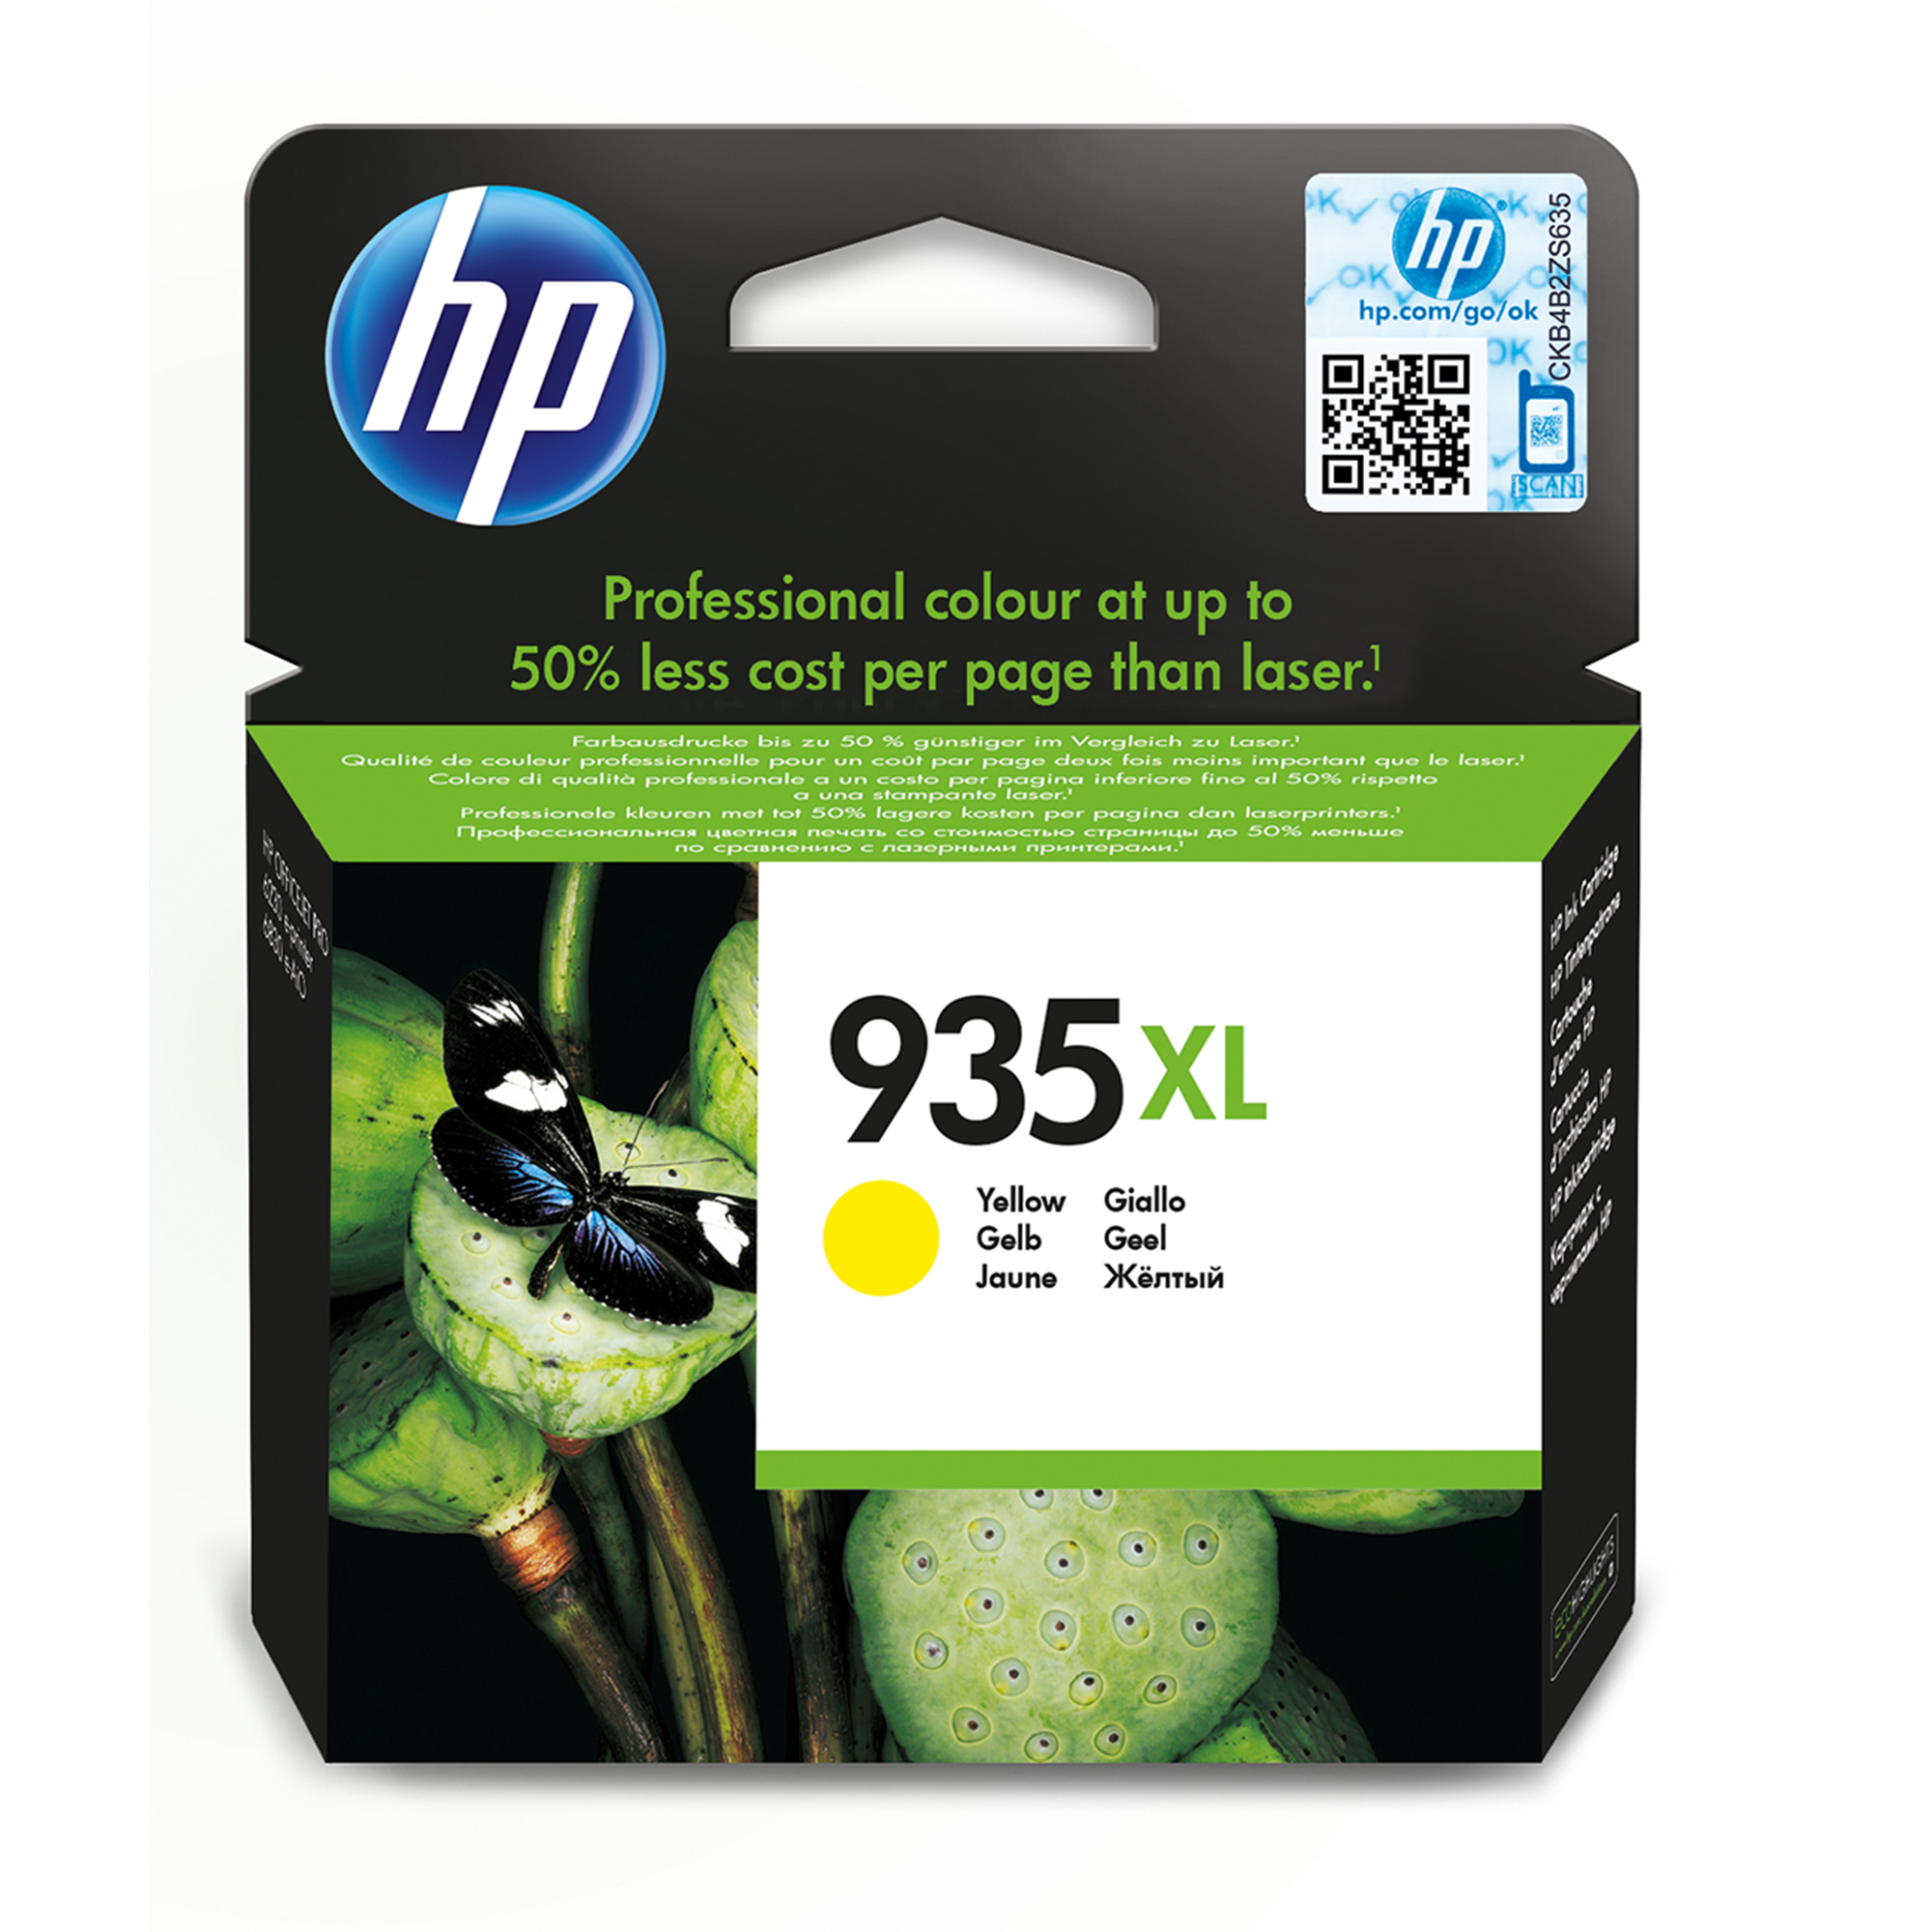 HP 935XL - Yellow - Original - Ink Cartridge - For Officejet 6812, 6815, Officejet Pro 6230, 6230 EPrinter, 6830, 6835 C2P26AE#BGX - C2000